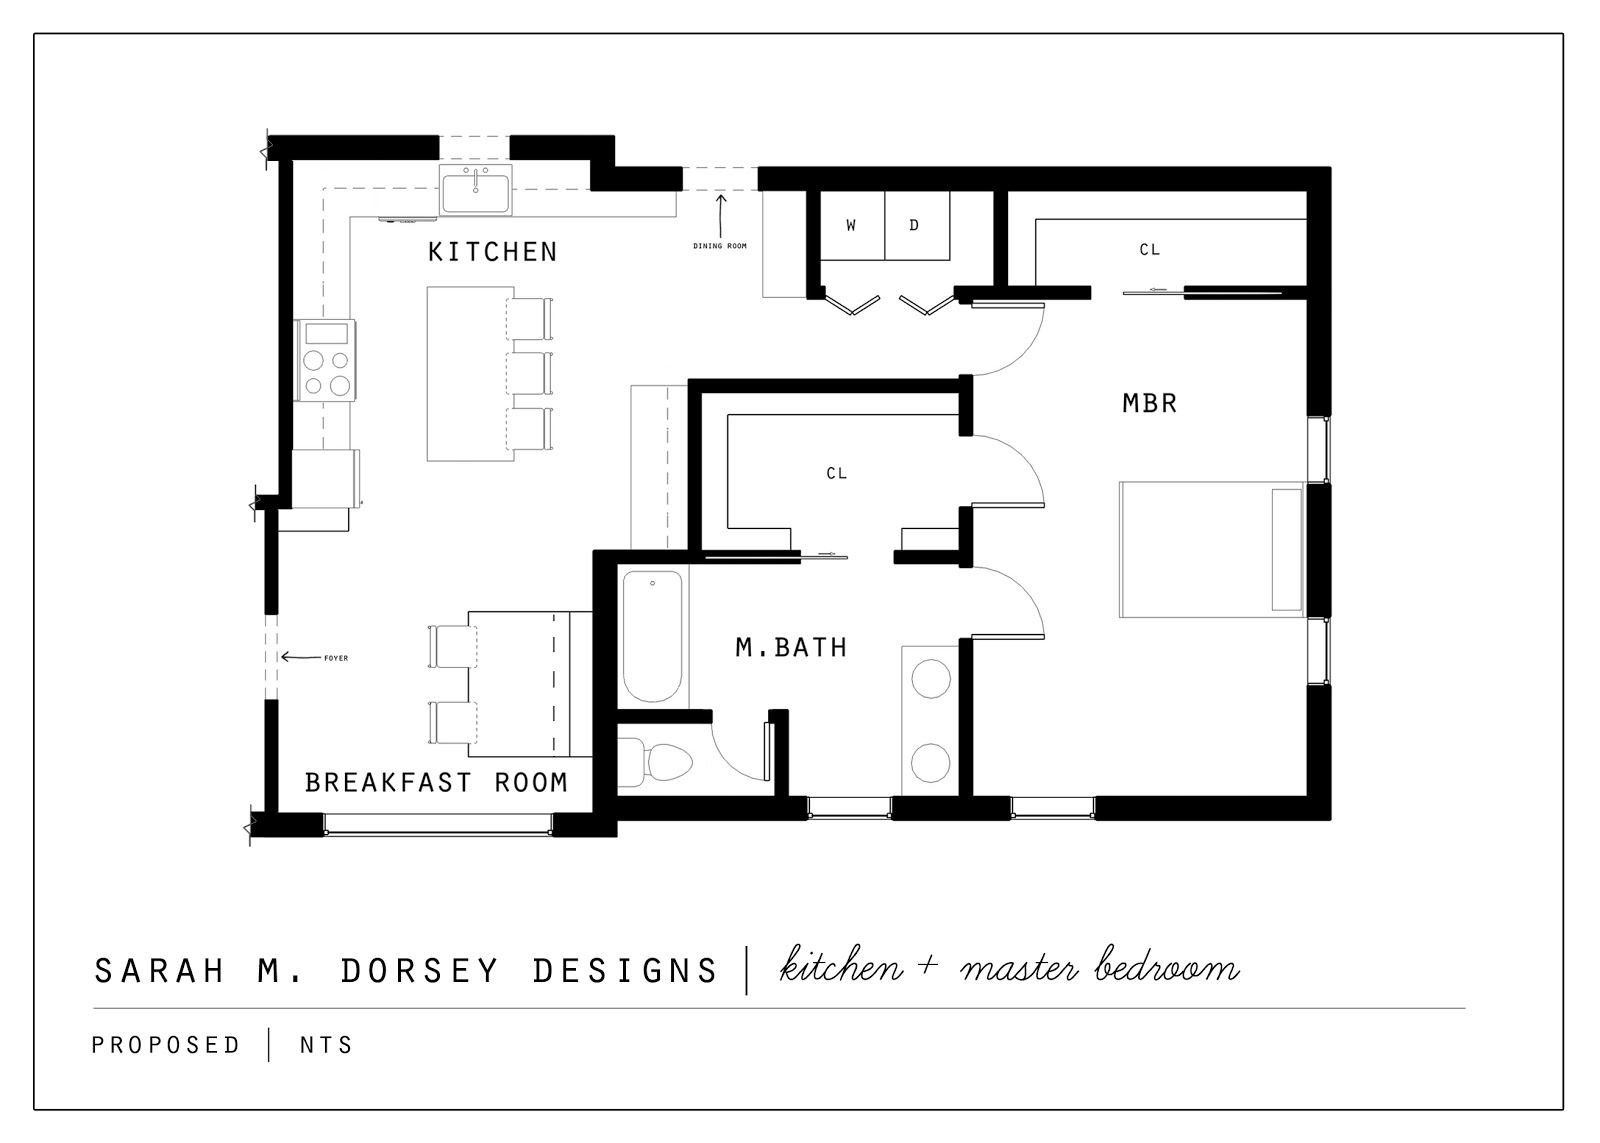 Sarah M Dorsey Designs Proposed Kitchen And Master Suite Remodel